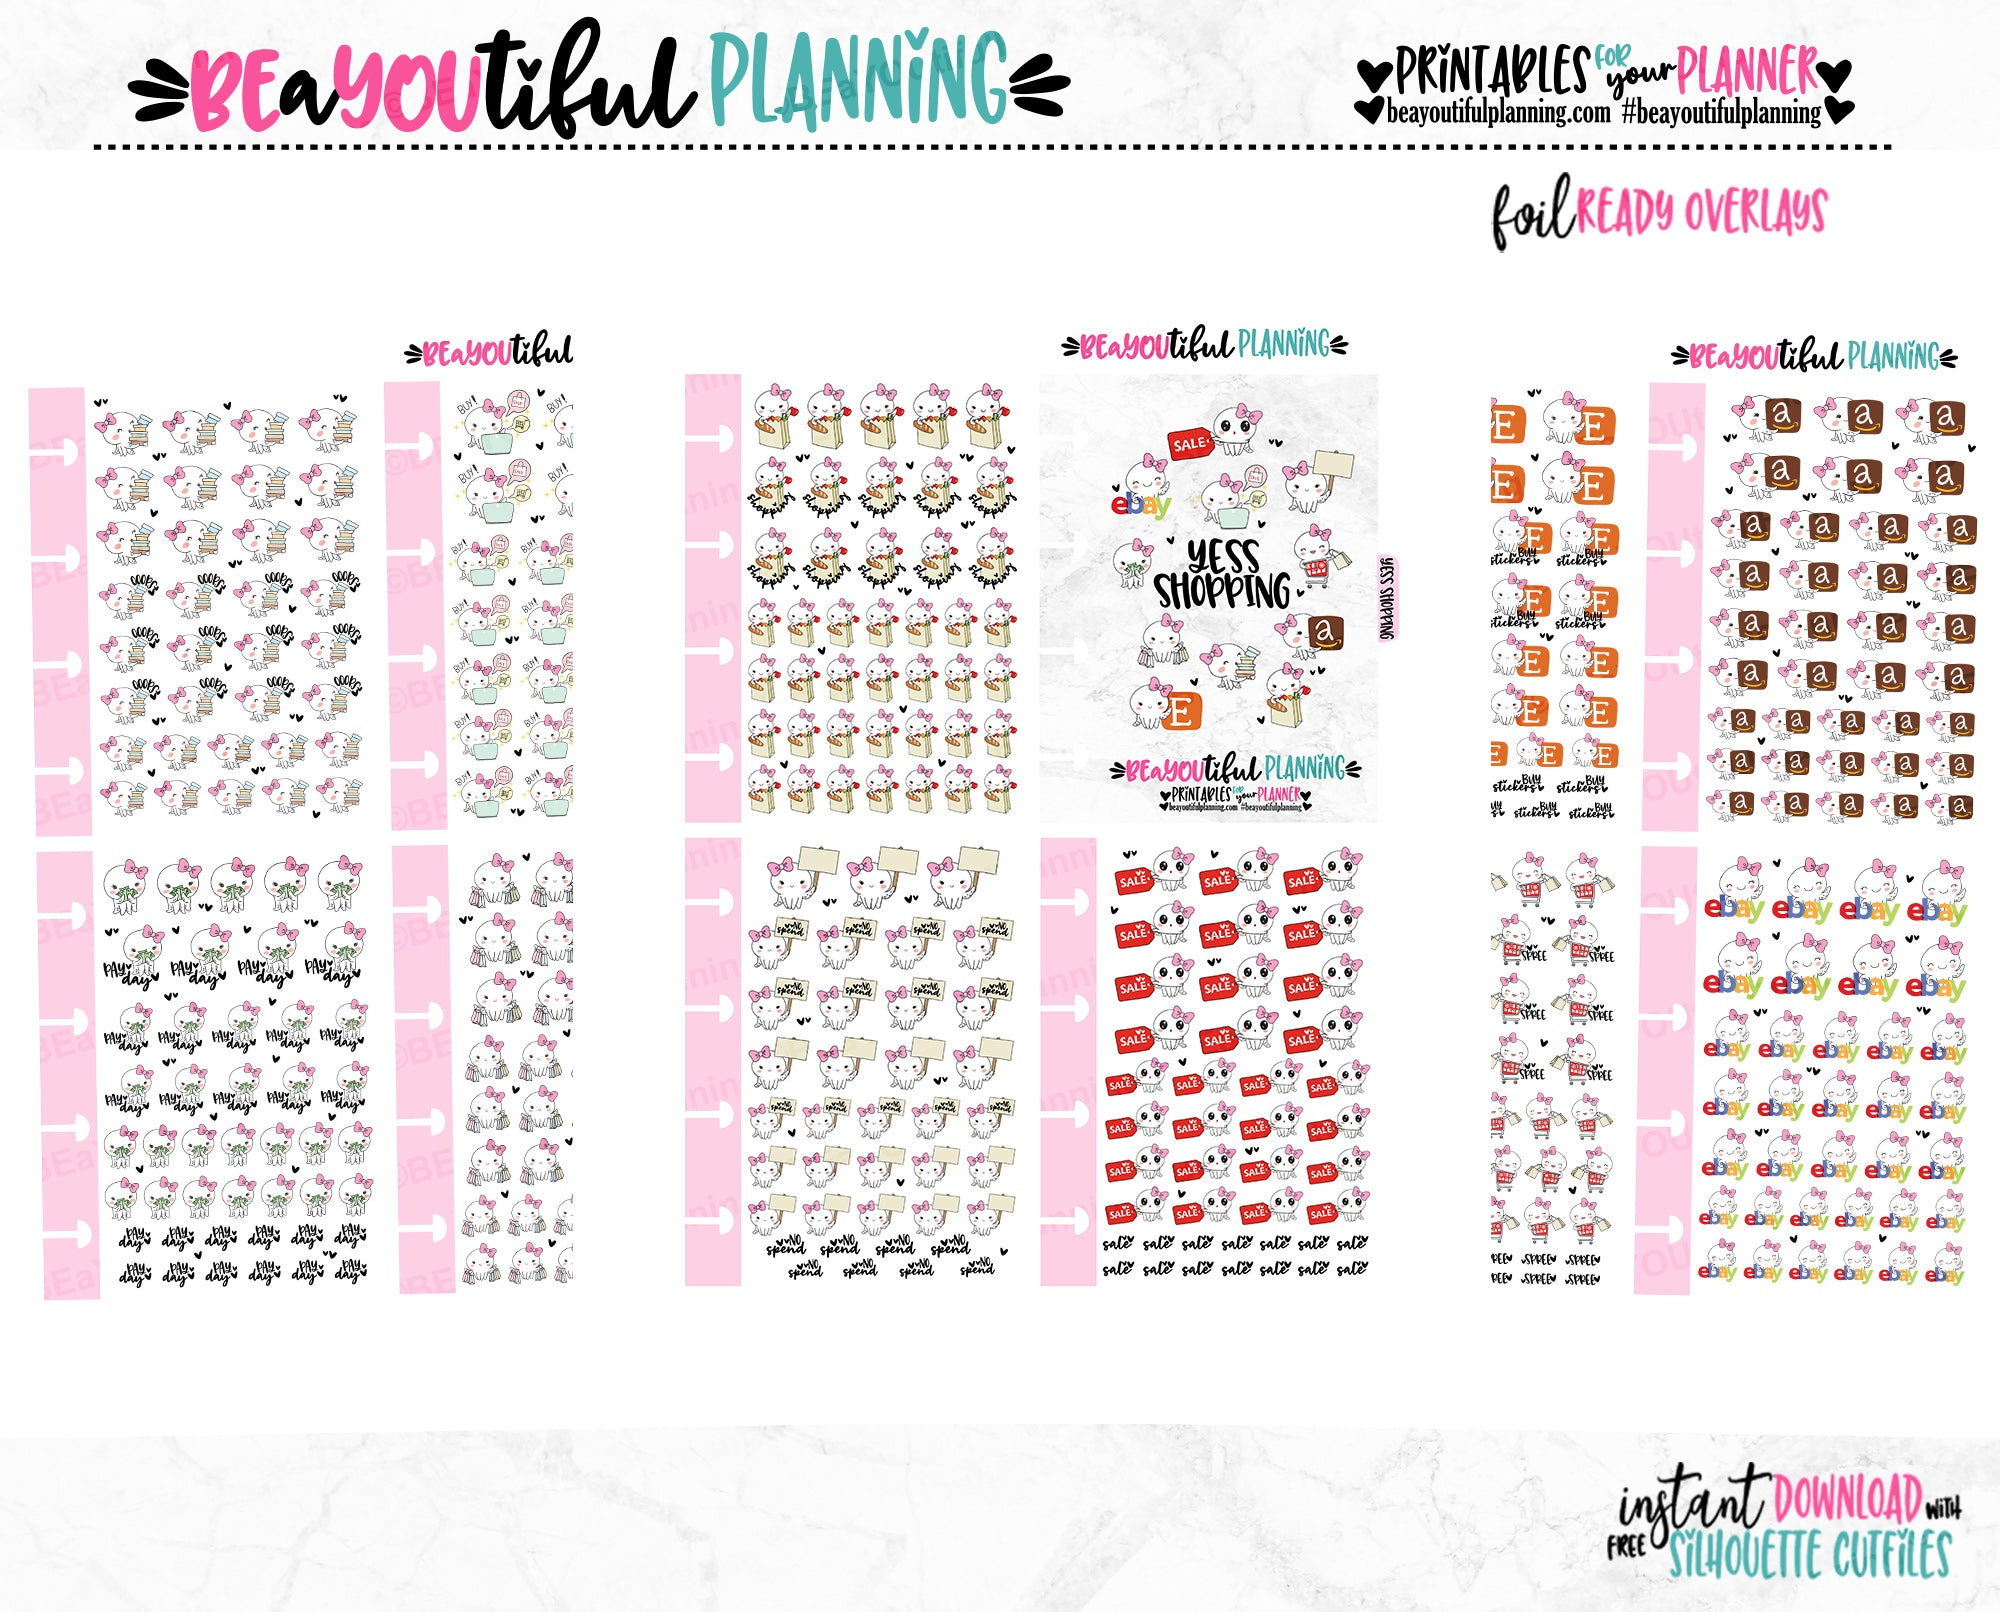 Shopping Planner Icons Foil Ready Printable Micro HP